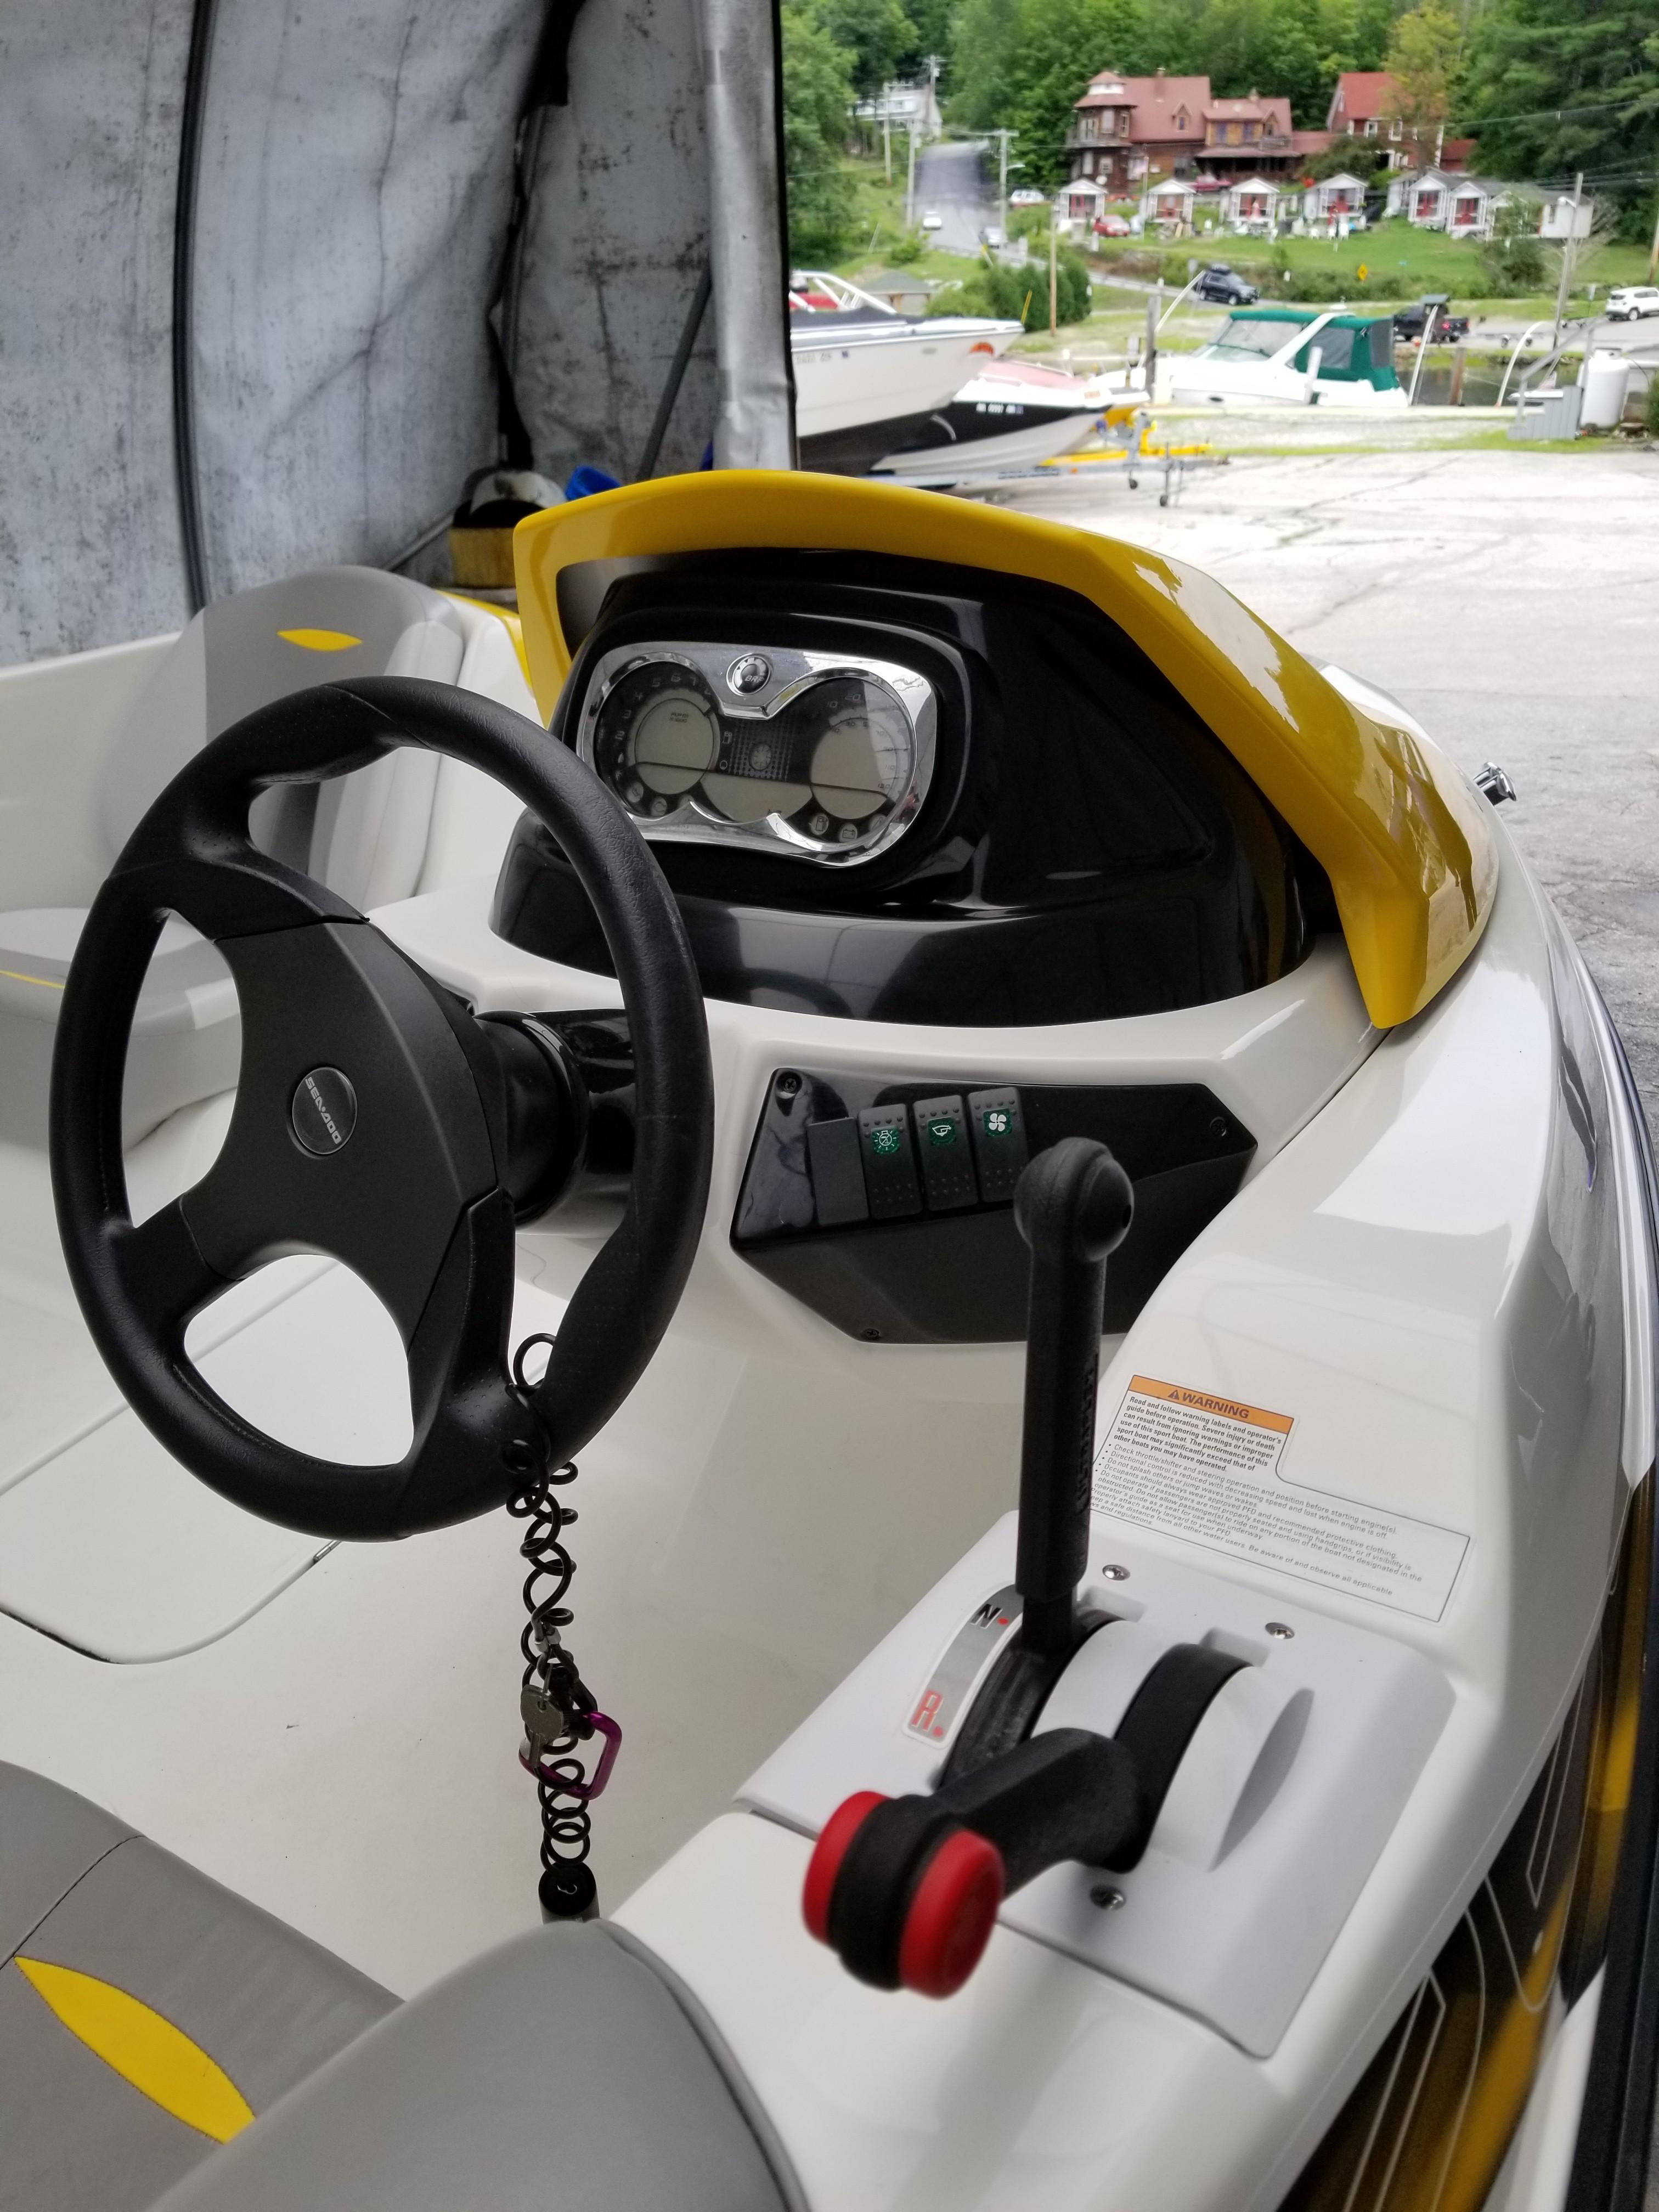 2009 Sea Doo Sportboat boat for sale, model of the boat is 150 Speedster & Image # 5 of 16